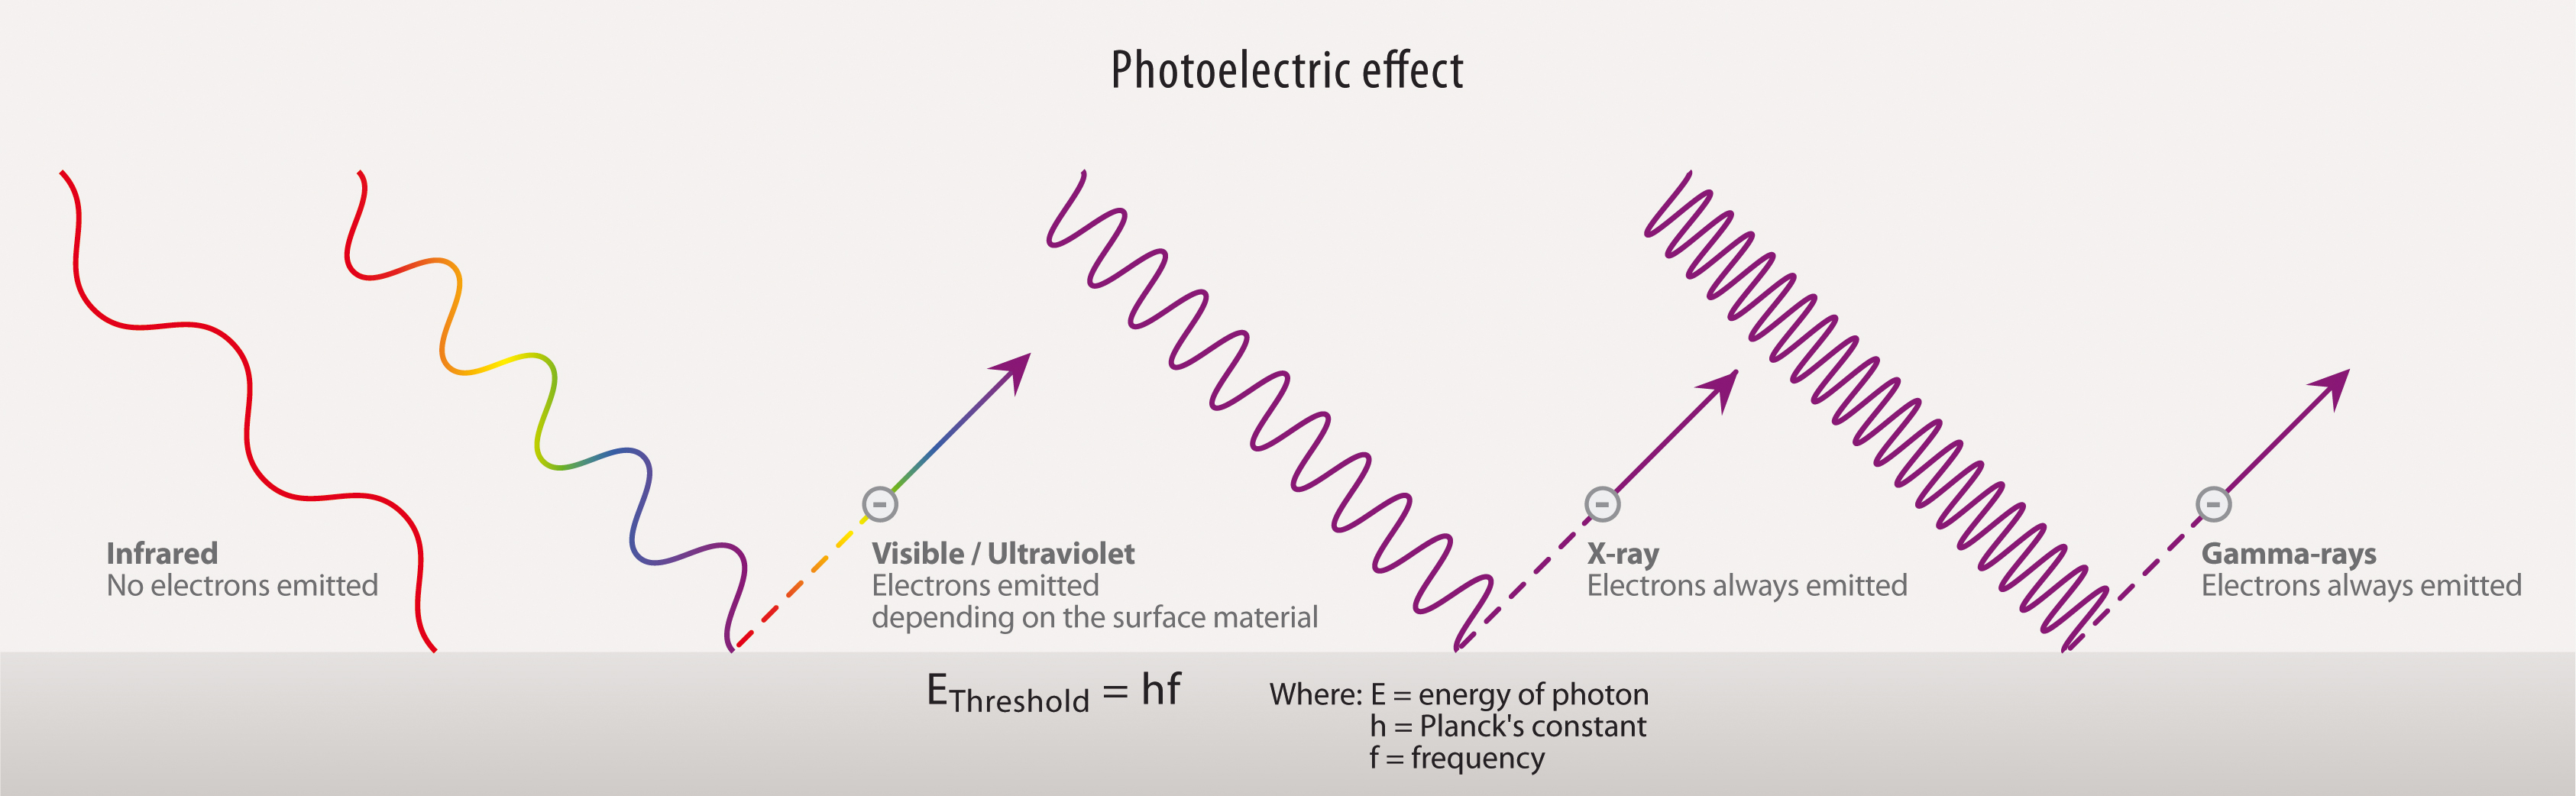 the photoelectric effect A material that can exhibit the photoelectric effect is said to be photoemissive electrons ejected by the photoelectric effect are called photoelectrons  the photoelectric effect will not occur when the frequency of the incident light is less than the threshold frequency.